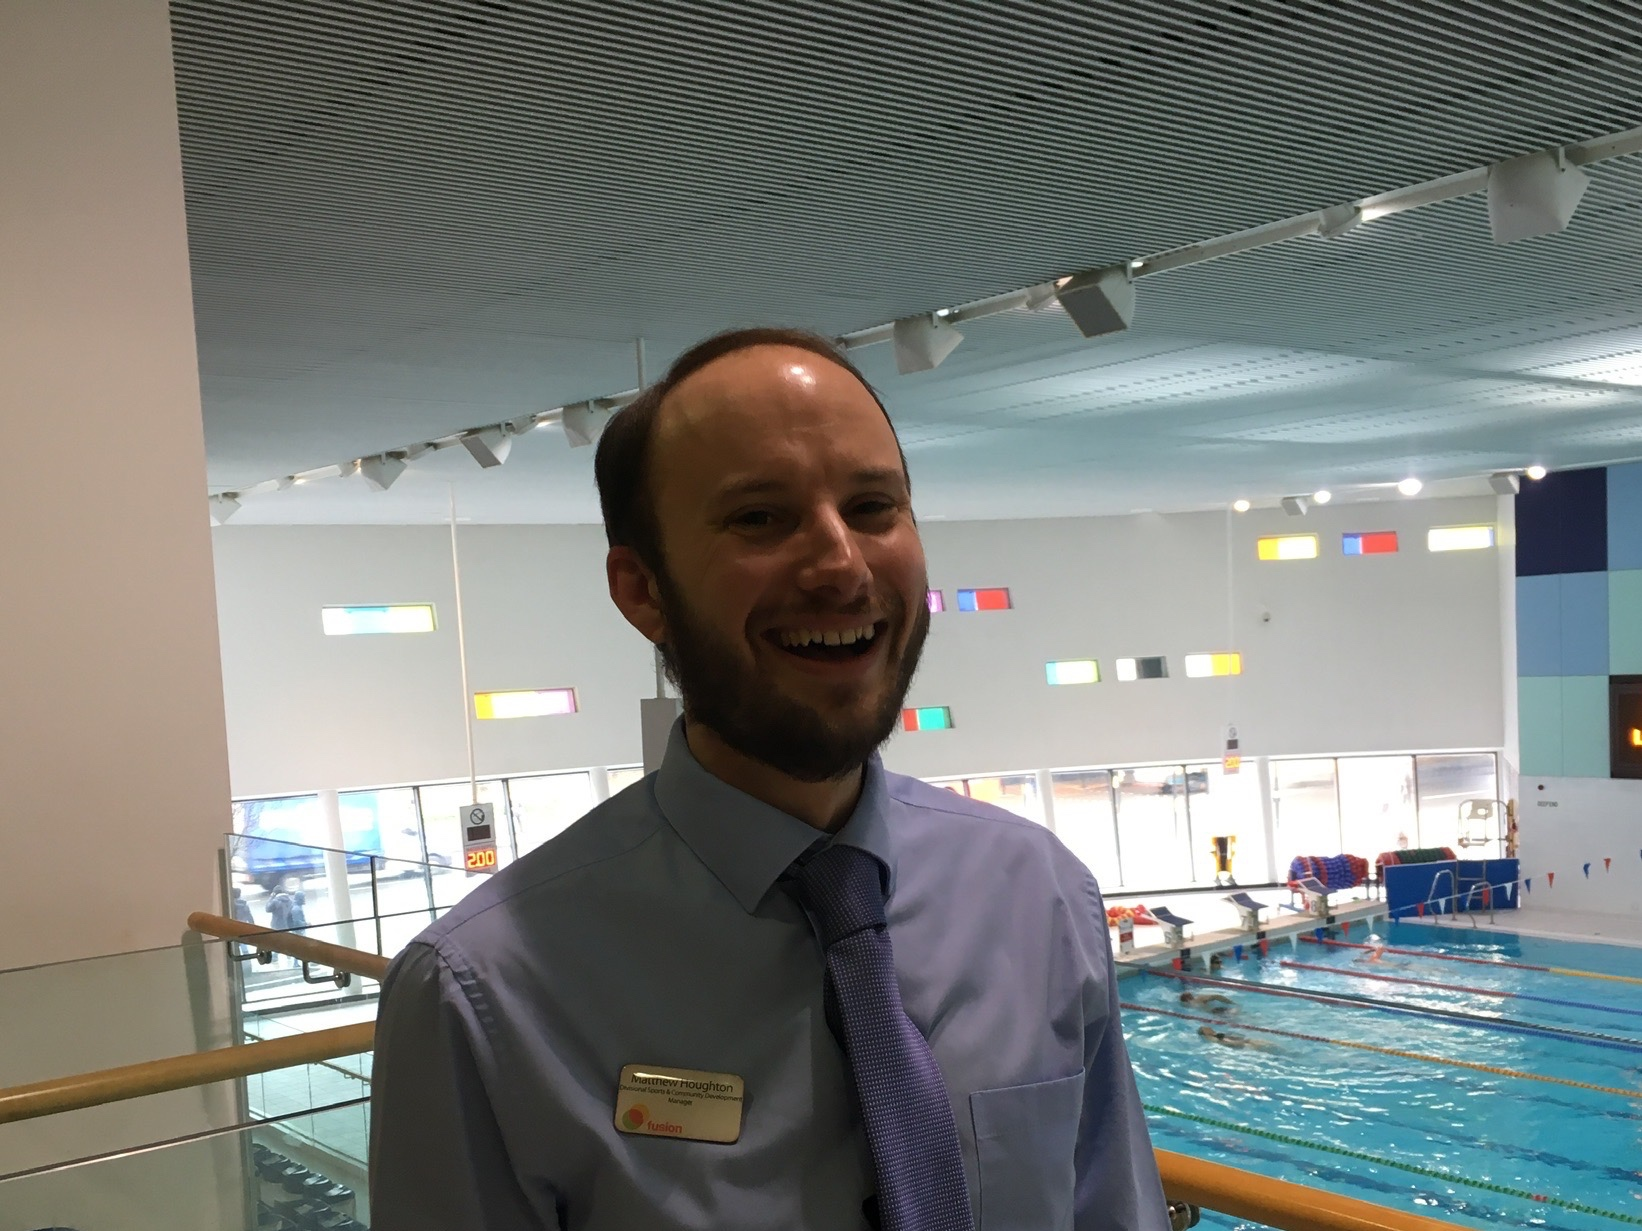 Where to find Matthew? - Glass Mill Leisure Centrewww.fusion-lifestyle.com/centres/glass-mill-leisure-centre/Want to train up employees to promote Mental Health Awareness and First Aid in the workplace?Contact Ad-Lib Training todayinfo@adlibtraining.com